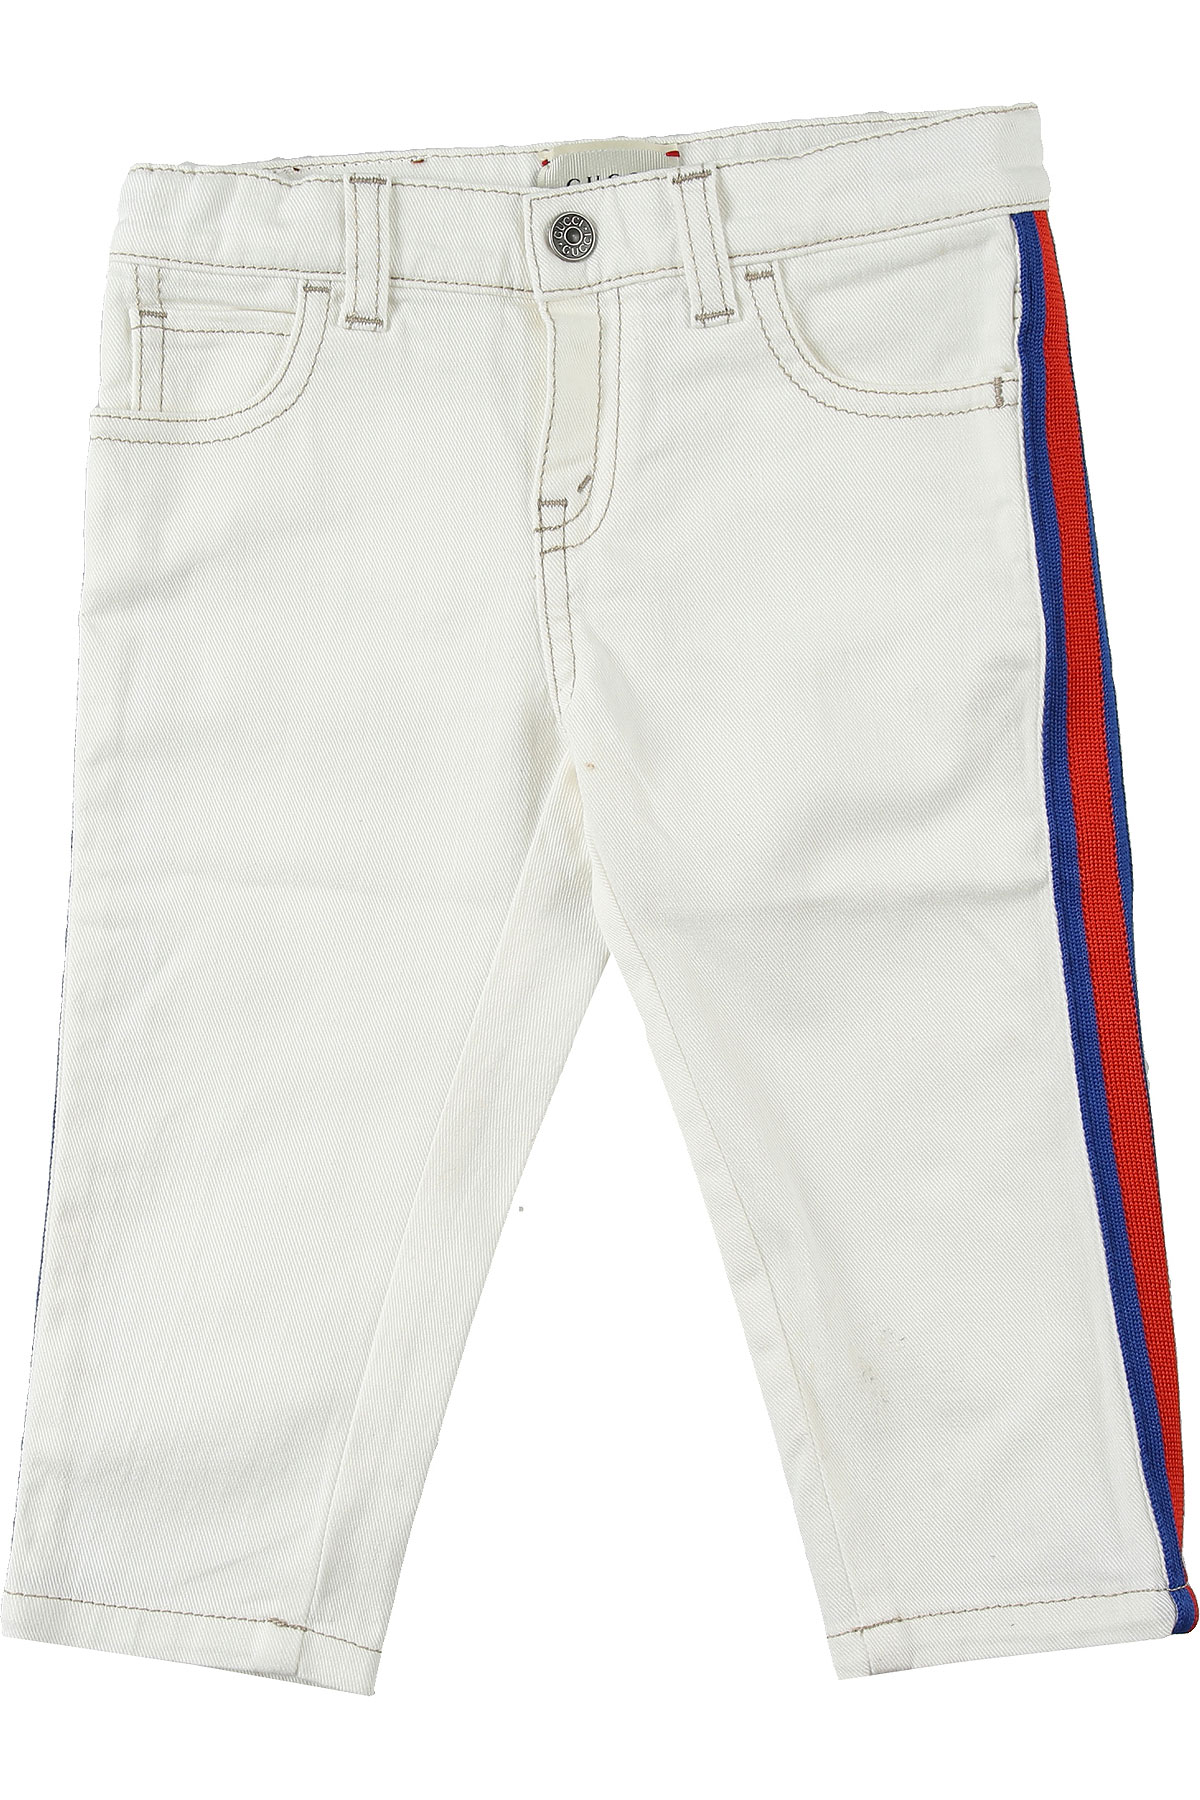 Gucci Baby Jeans for Boys, White, Cotton, 2017, 24M 2Y 3Y 6M 9M